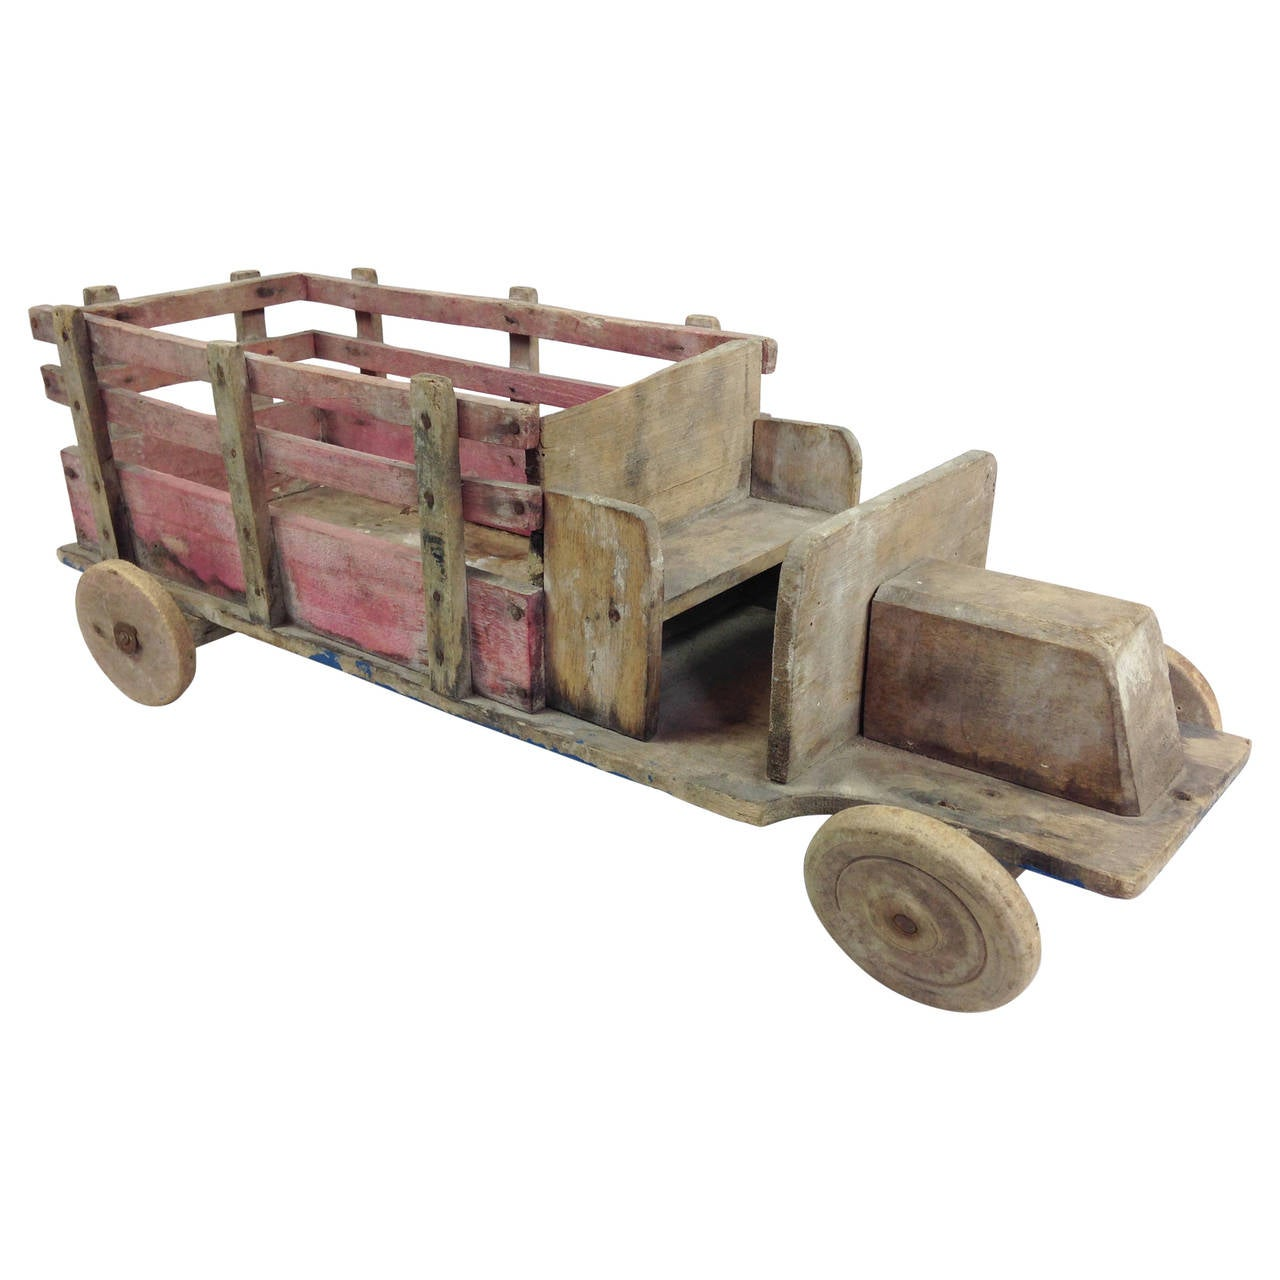 20th Century Toys : Early th century scratch built wooden toy truck at stdibs